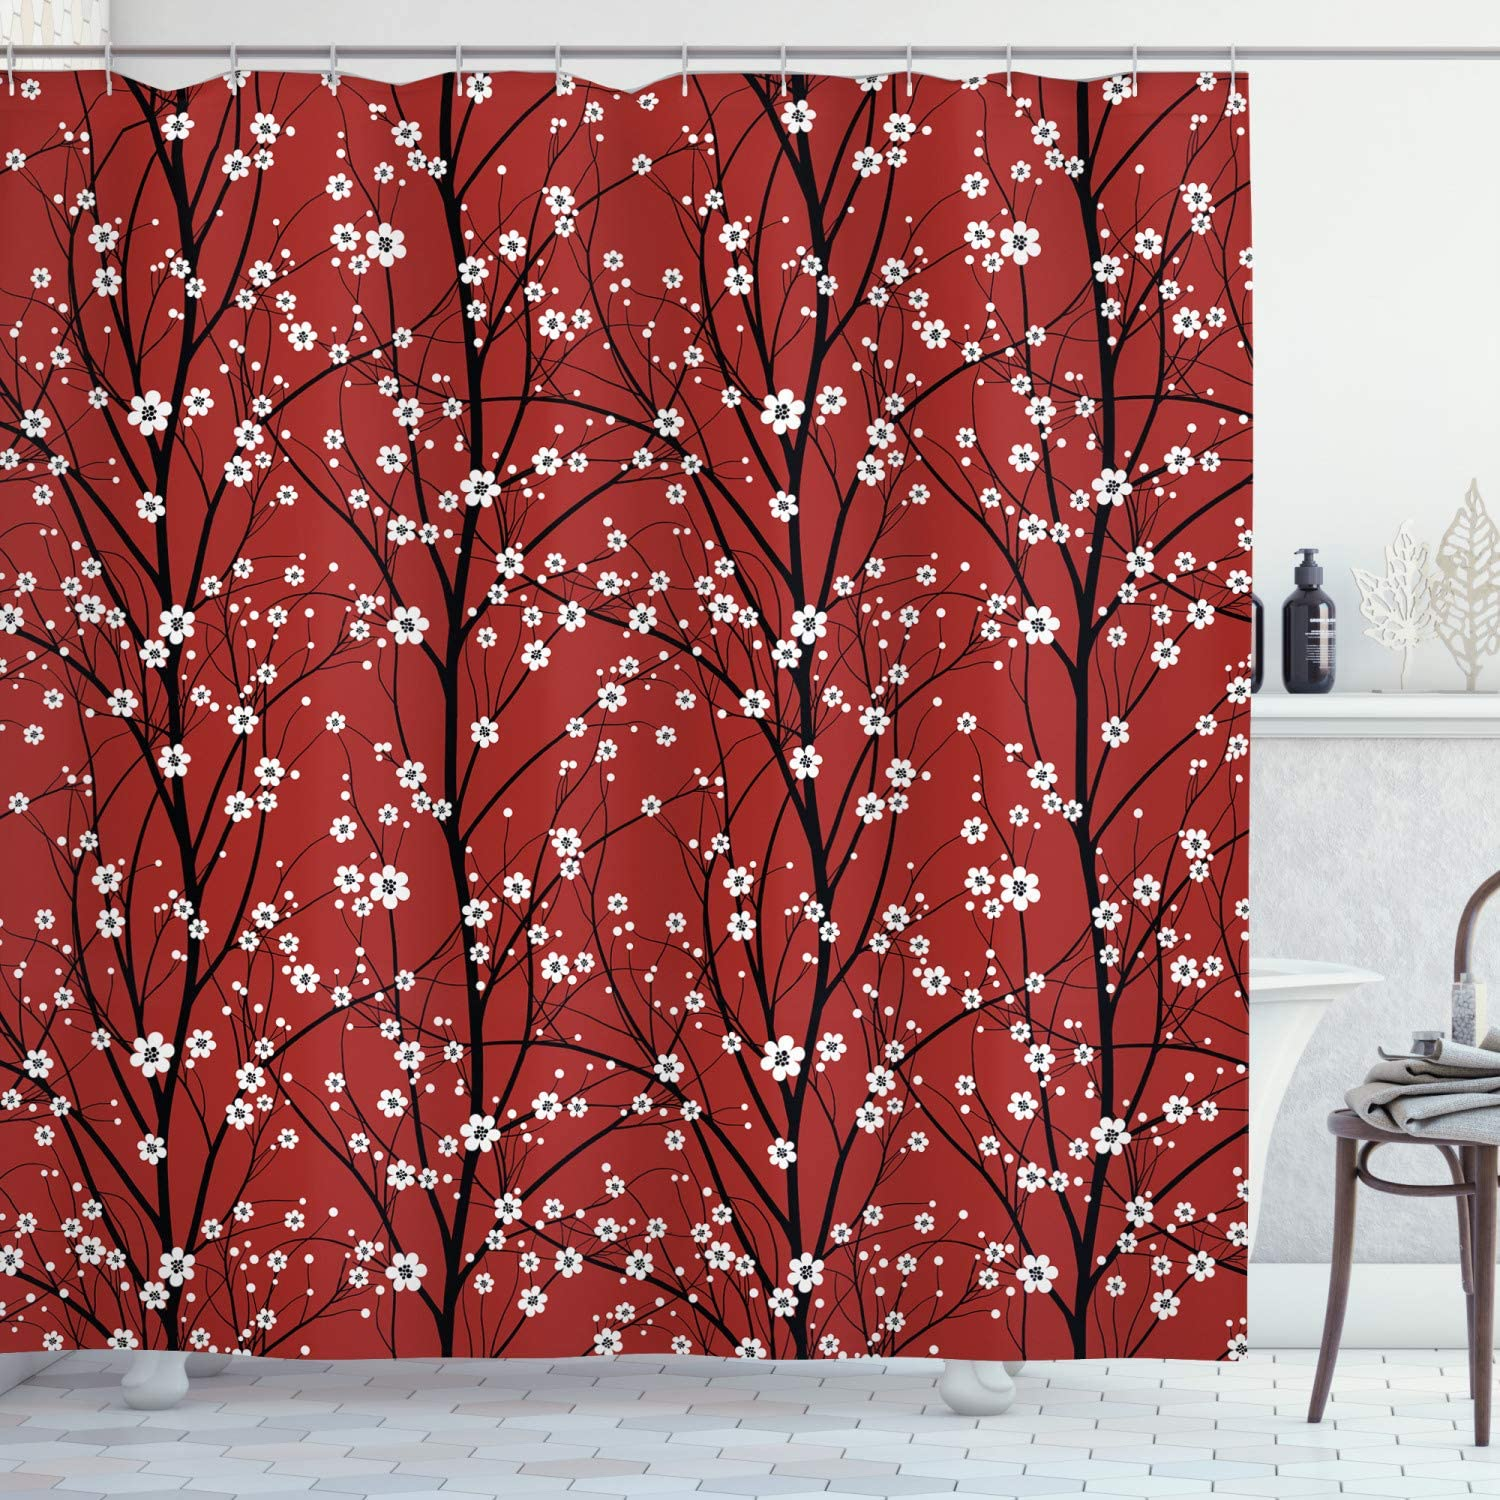 Lunarable Floral Shower Curtain, Cherry Blossom Tree Branches Beauty Japanese Traditional Folk Eastern Petals, Cloth Fabric Bathroom Decor Set with Hooks, 70